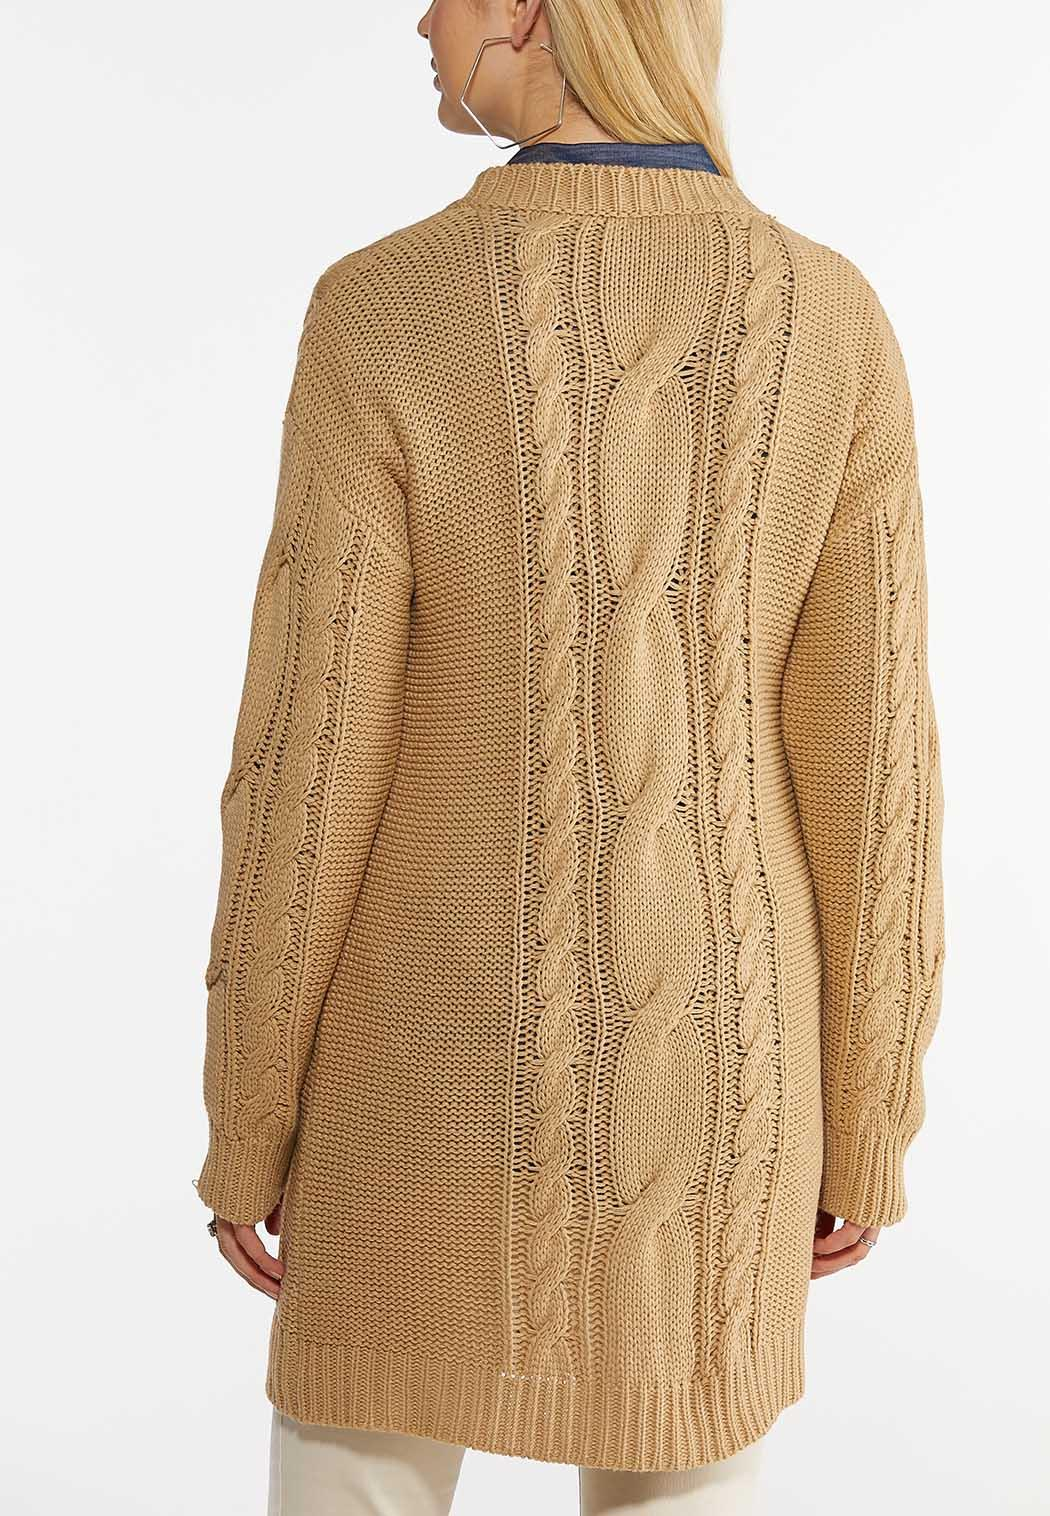 Plus Size Relaxed Cable Knit Cardigan Sweater (Item #44469793)